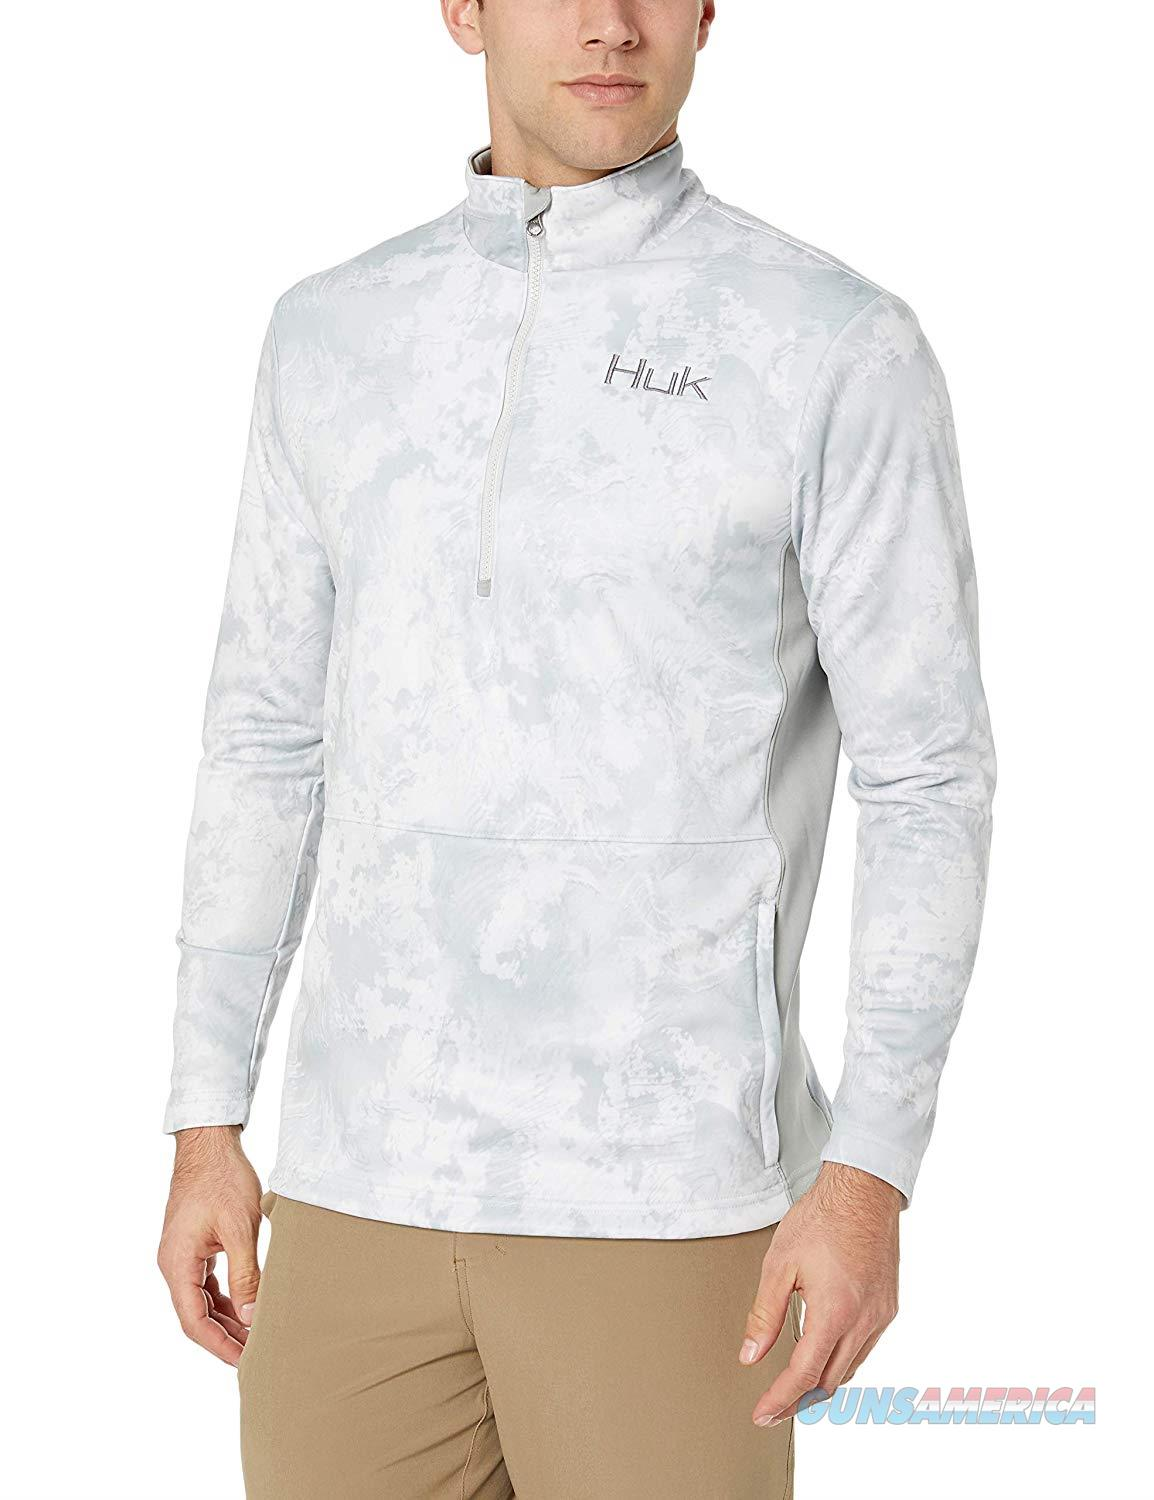 Huk Tidewater 1/4 Zip XL Subzero  Non-Guns > Hunting Clothing and Equipment > Clothing > Shirts